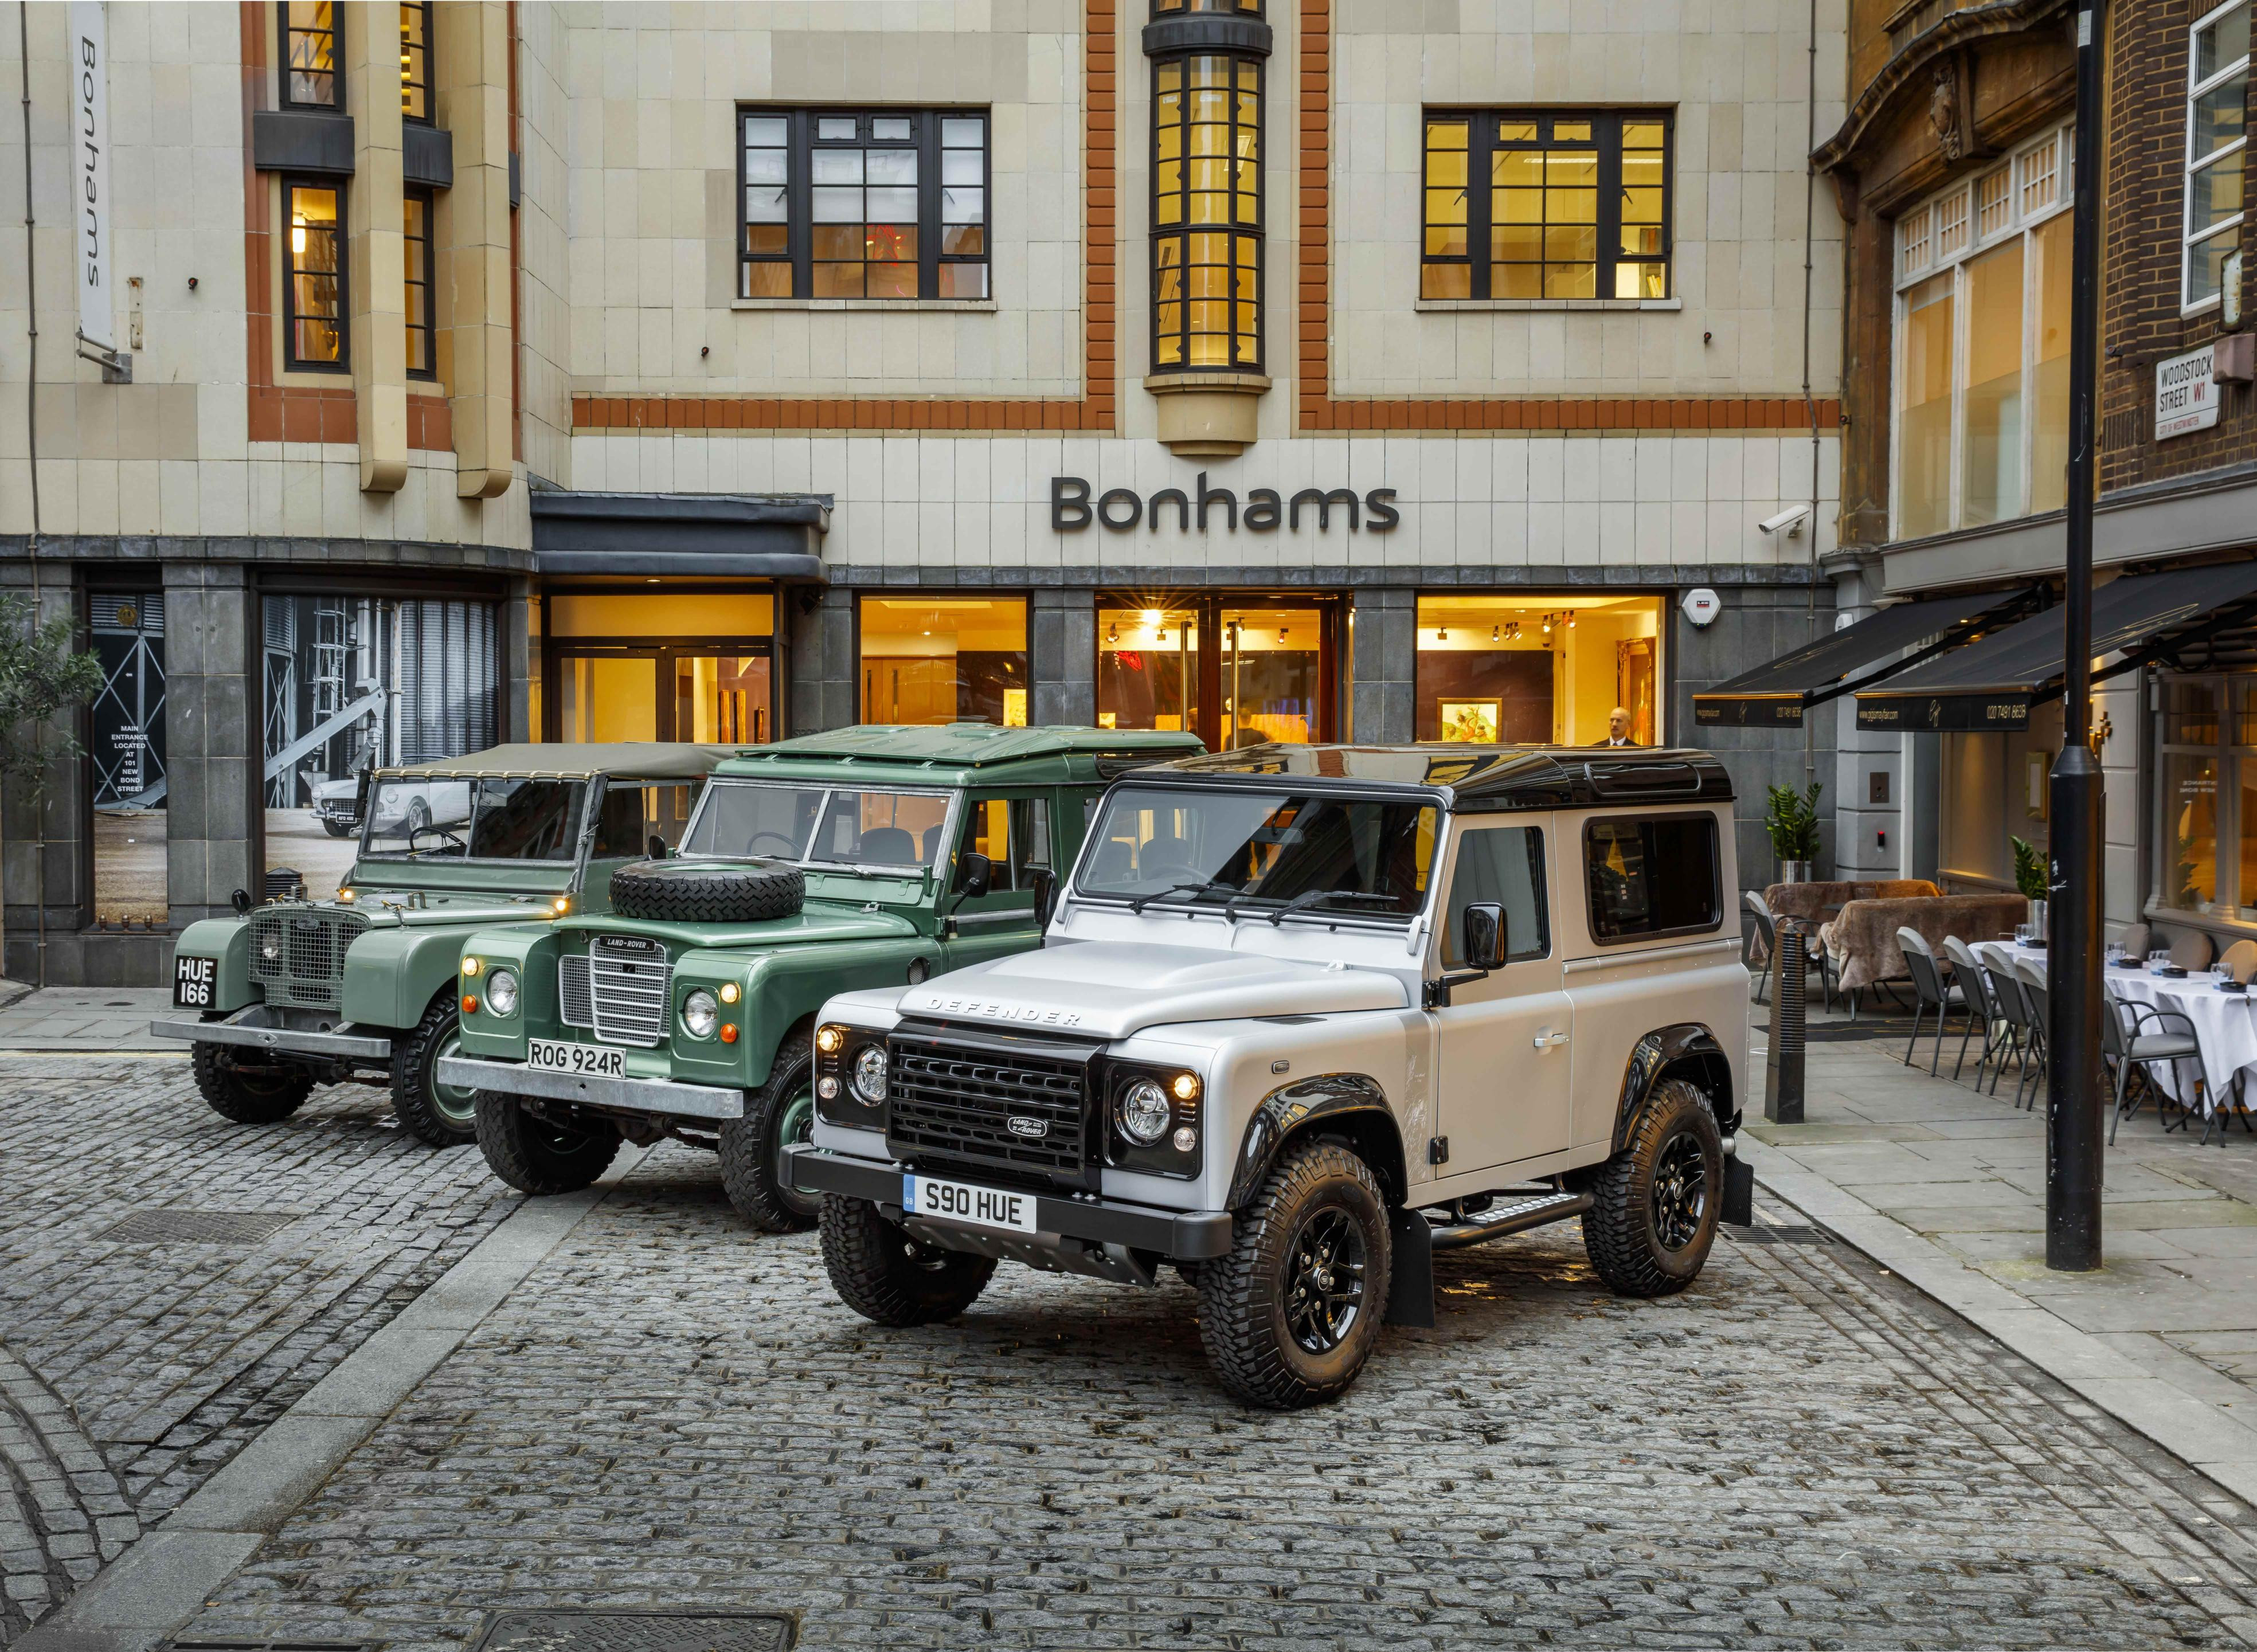 Lin-up of iconic Land Rover Defenders on a cobbled street